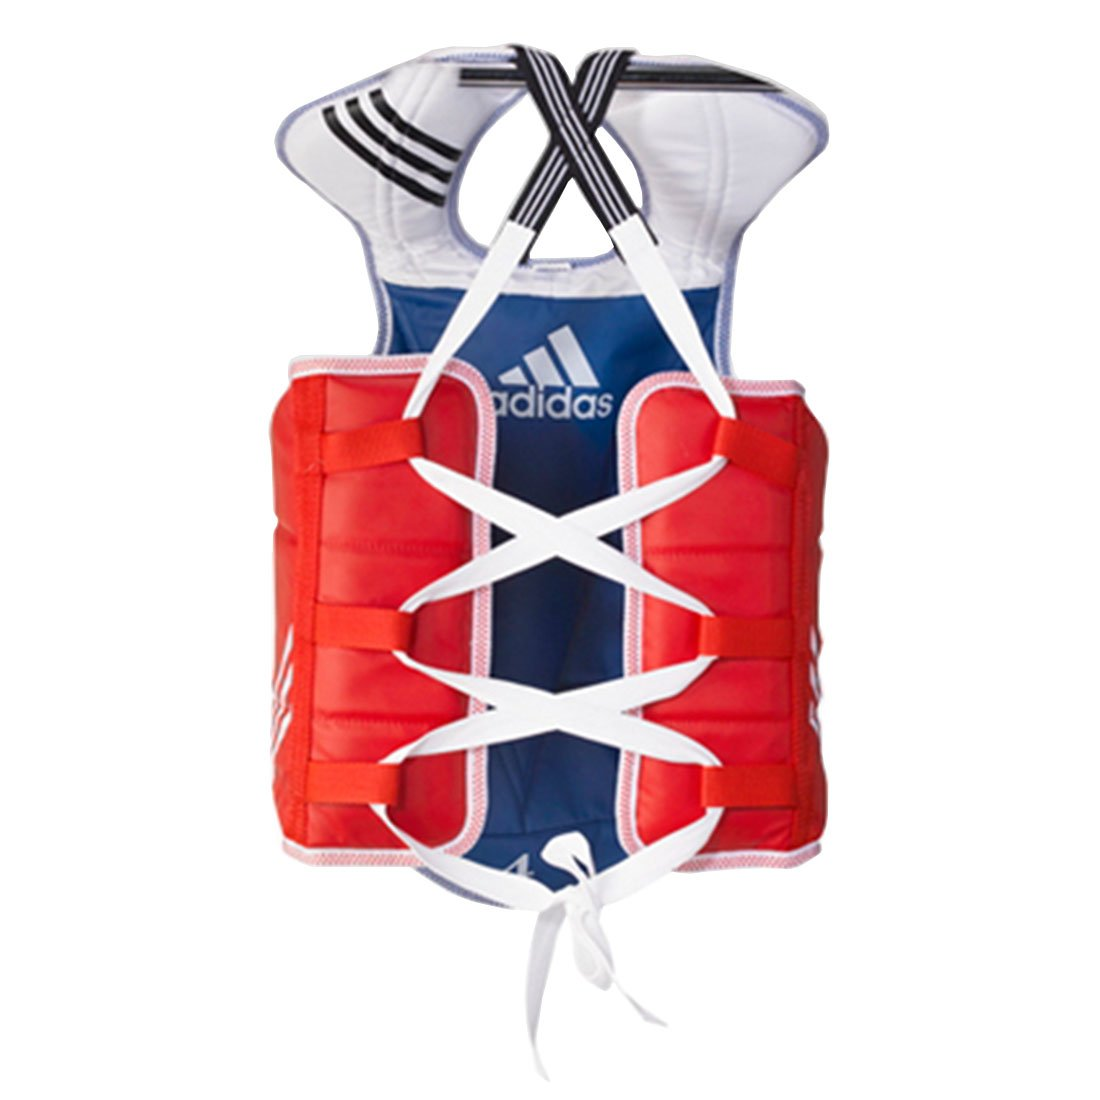 (4.L(170cm-190cm or 1.5m-1.8m)) - Adidas Taekwondo Chest Guard Reversible Hogu Body Protector Chest Protector WTF Approved XS to XL B00WCJSKFY